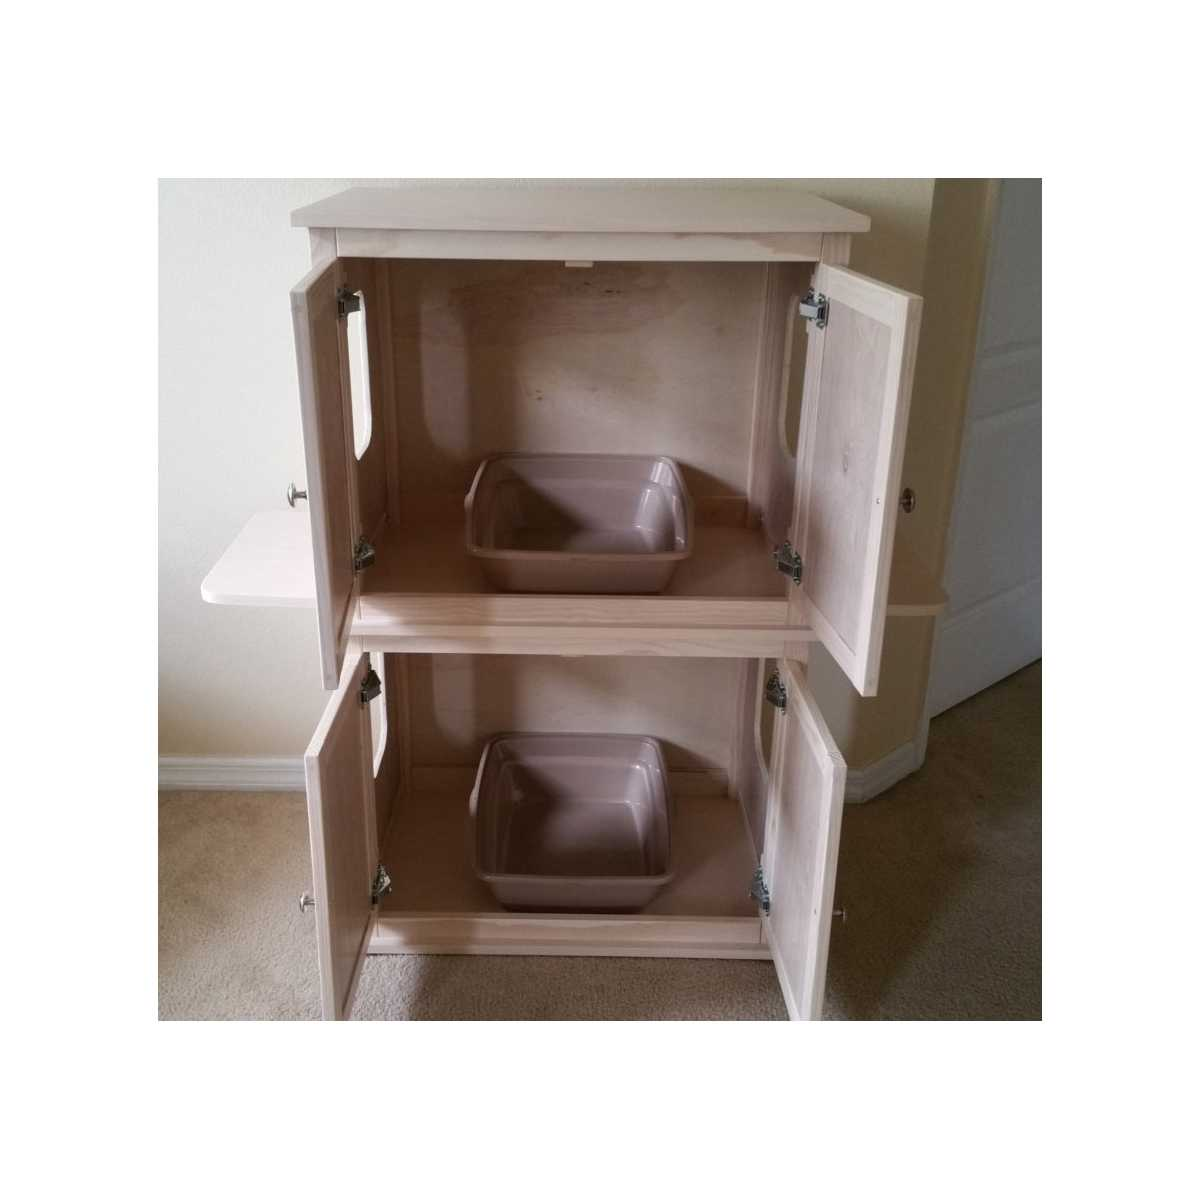 ... Stacked Double Cat Litter Box Cabinet With Odor Absorbing Light ...